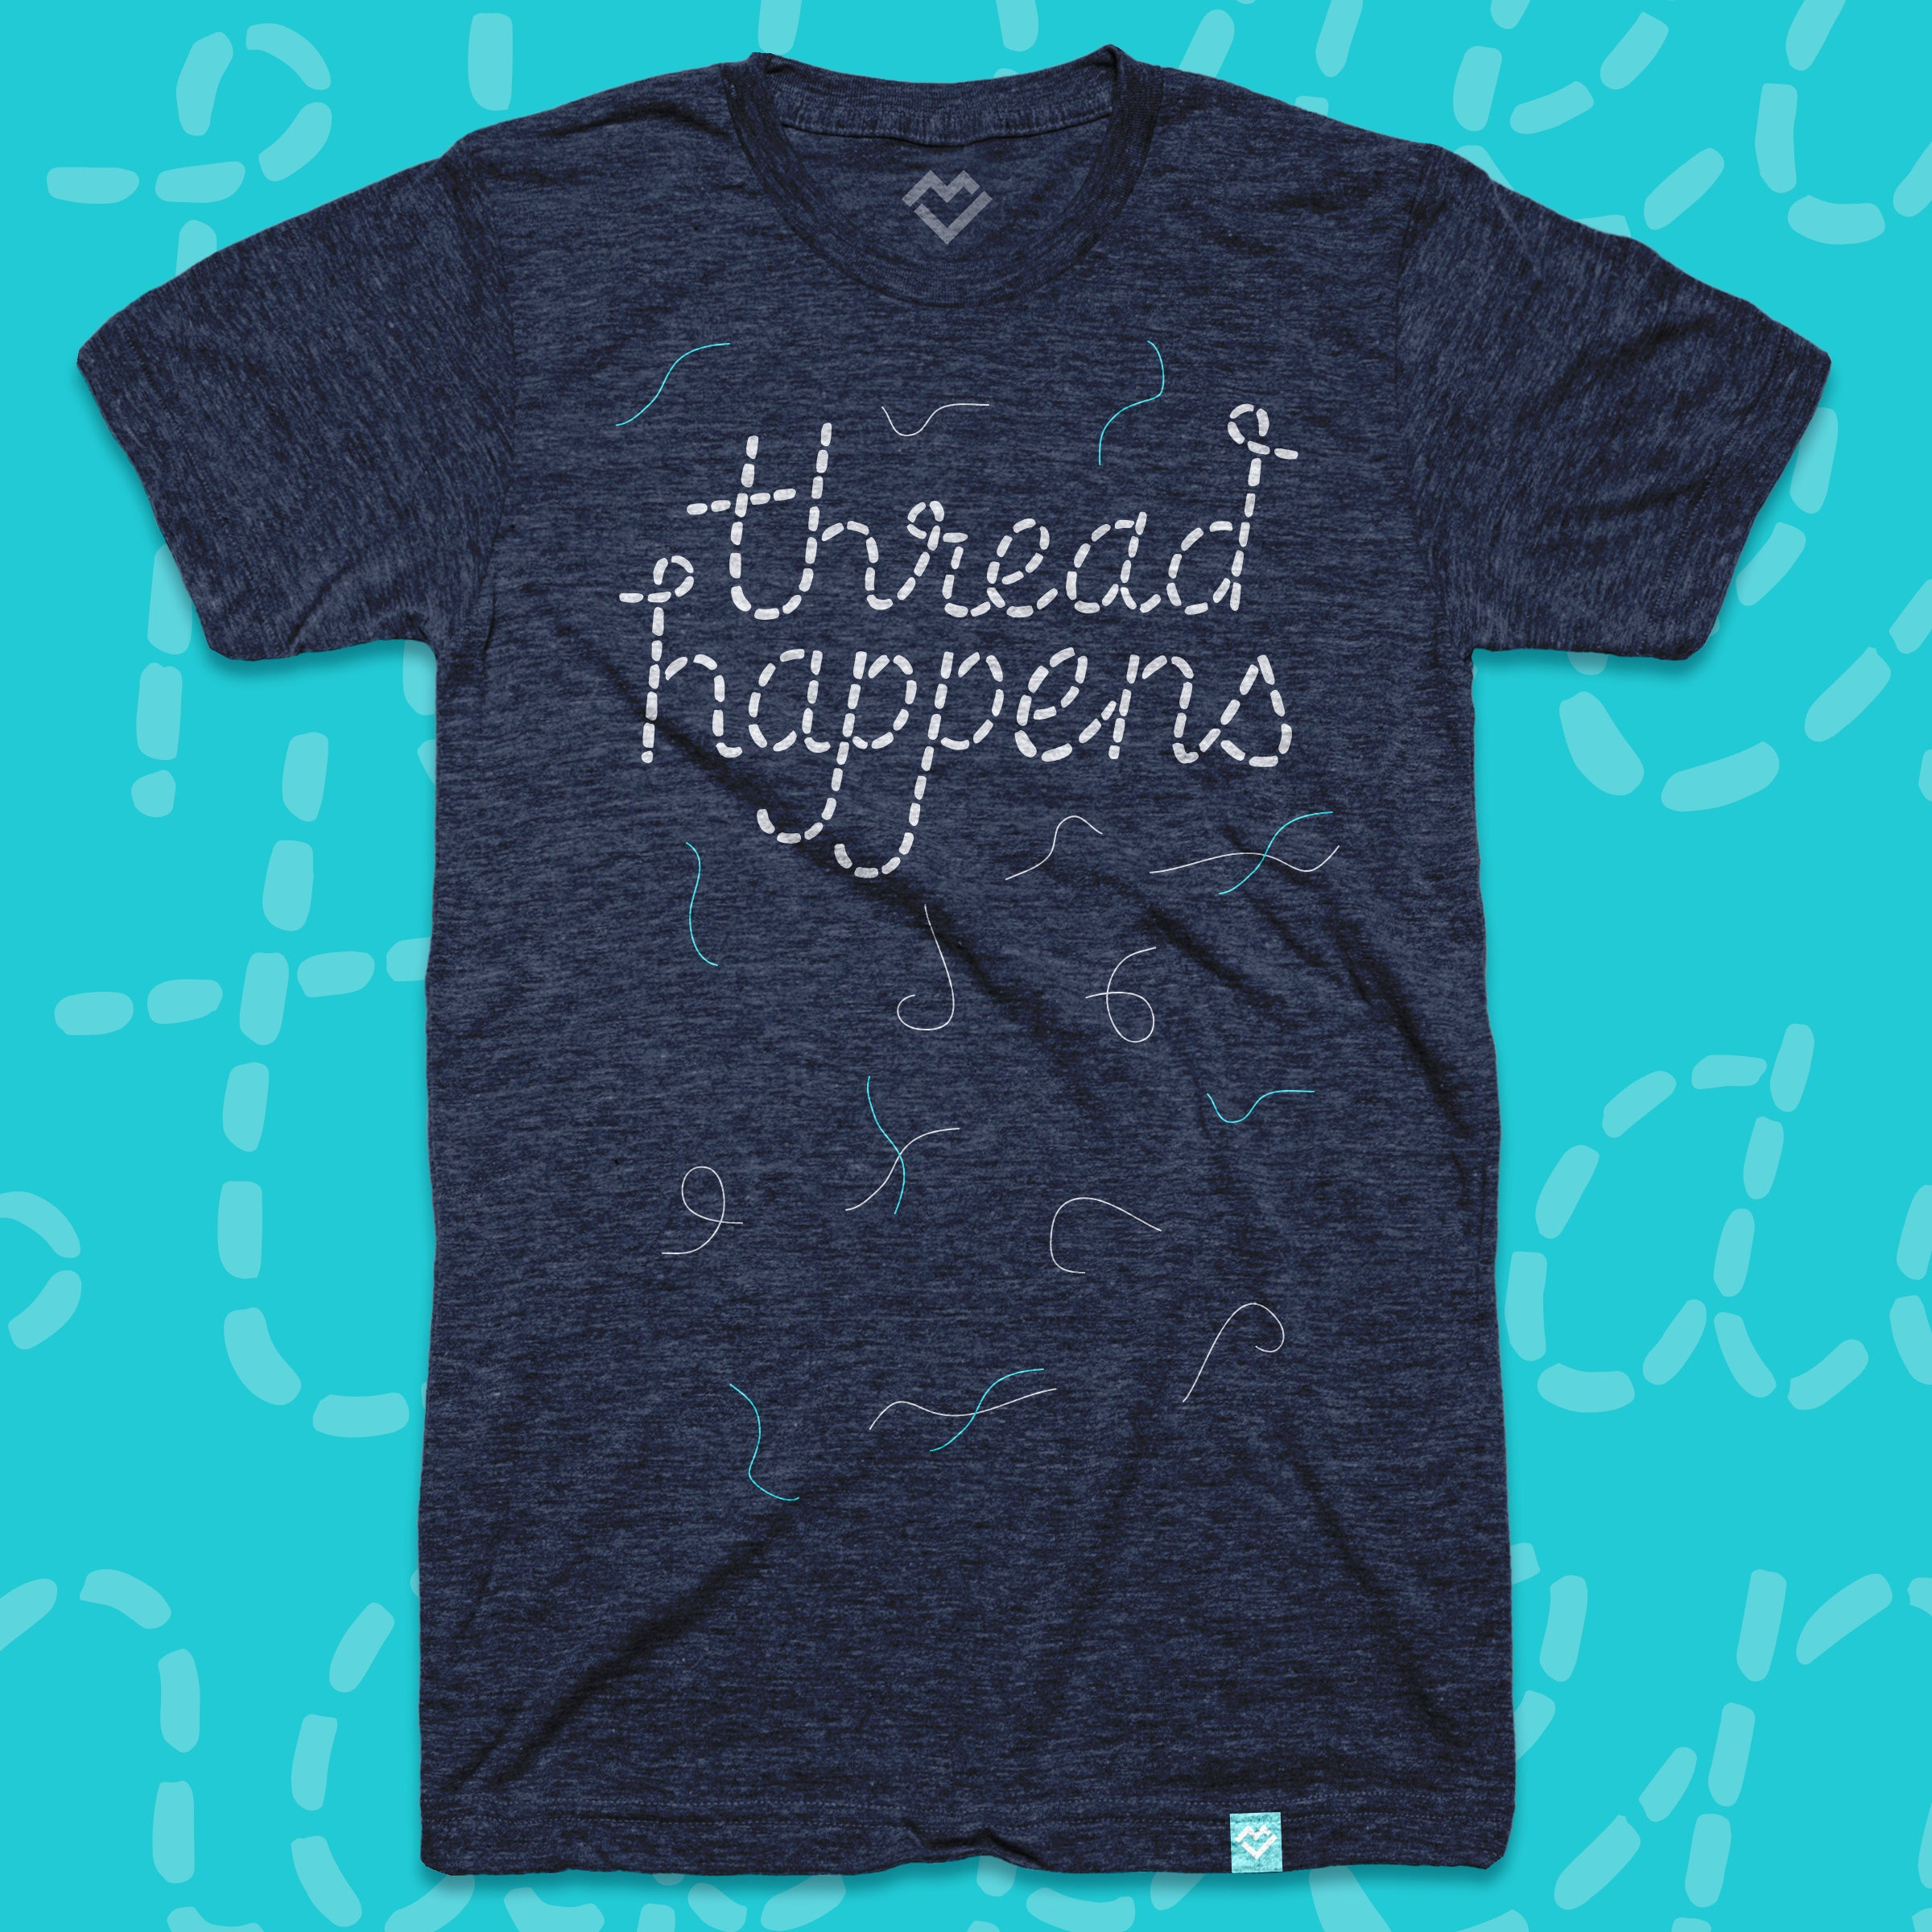 Thread Happens t-shirt by Maker Valley